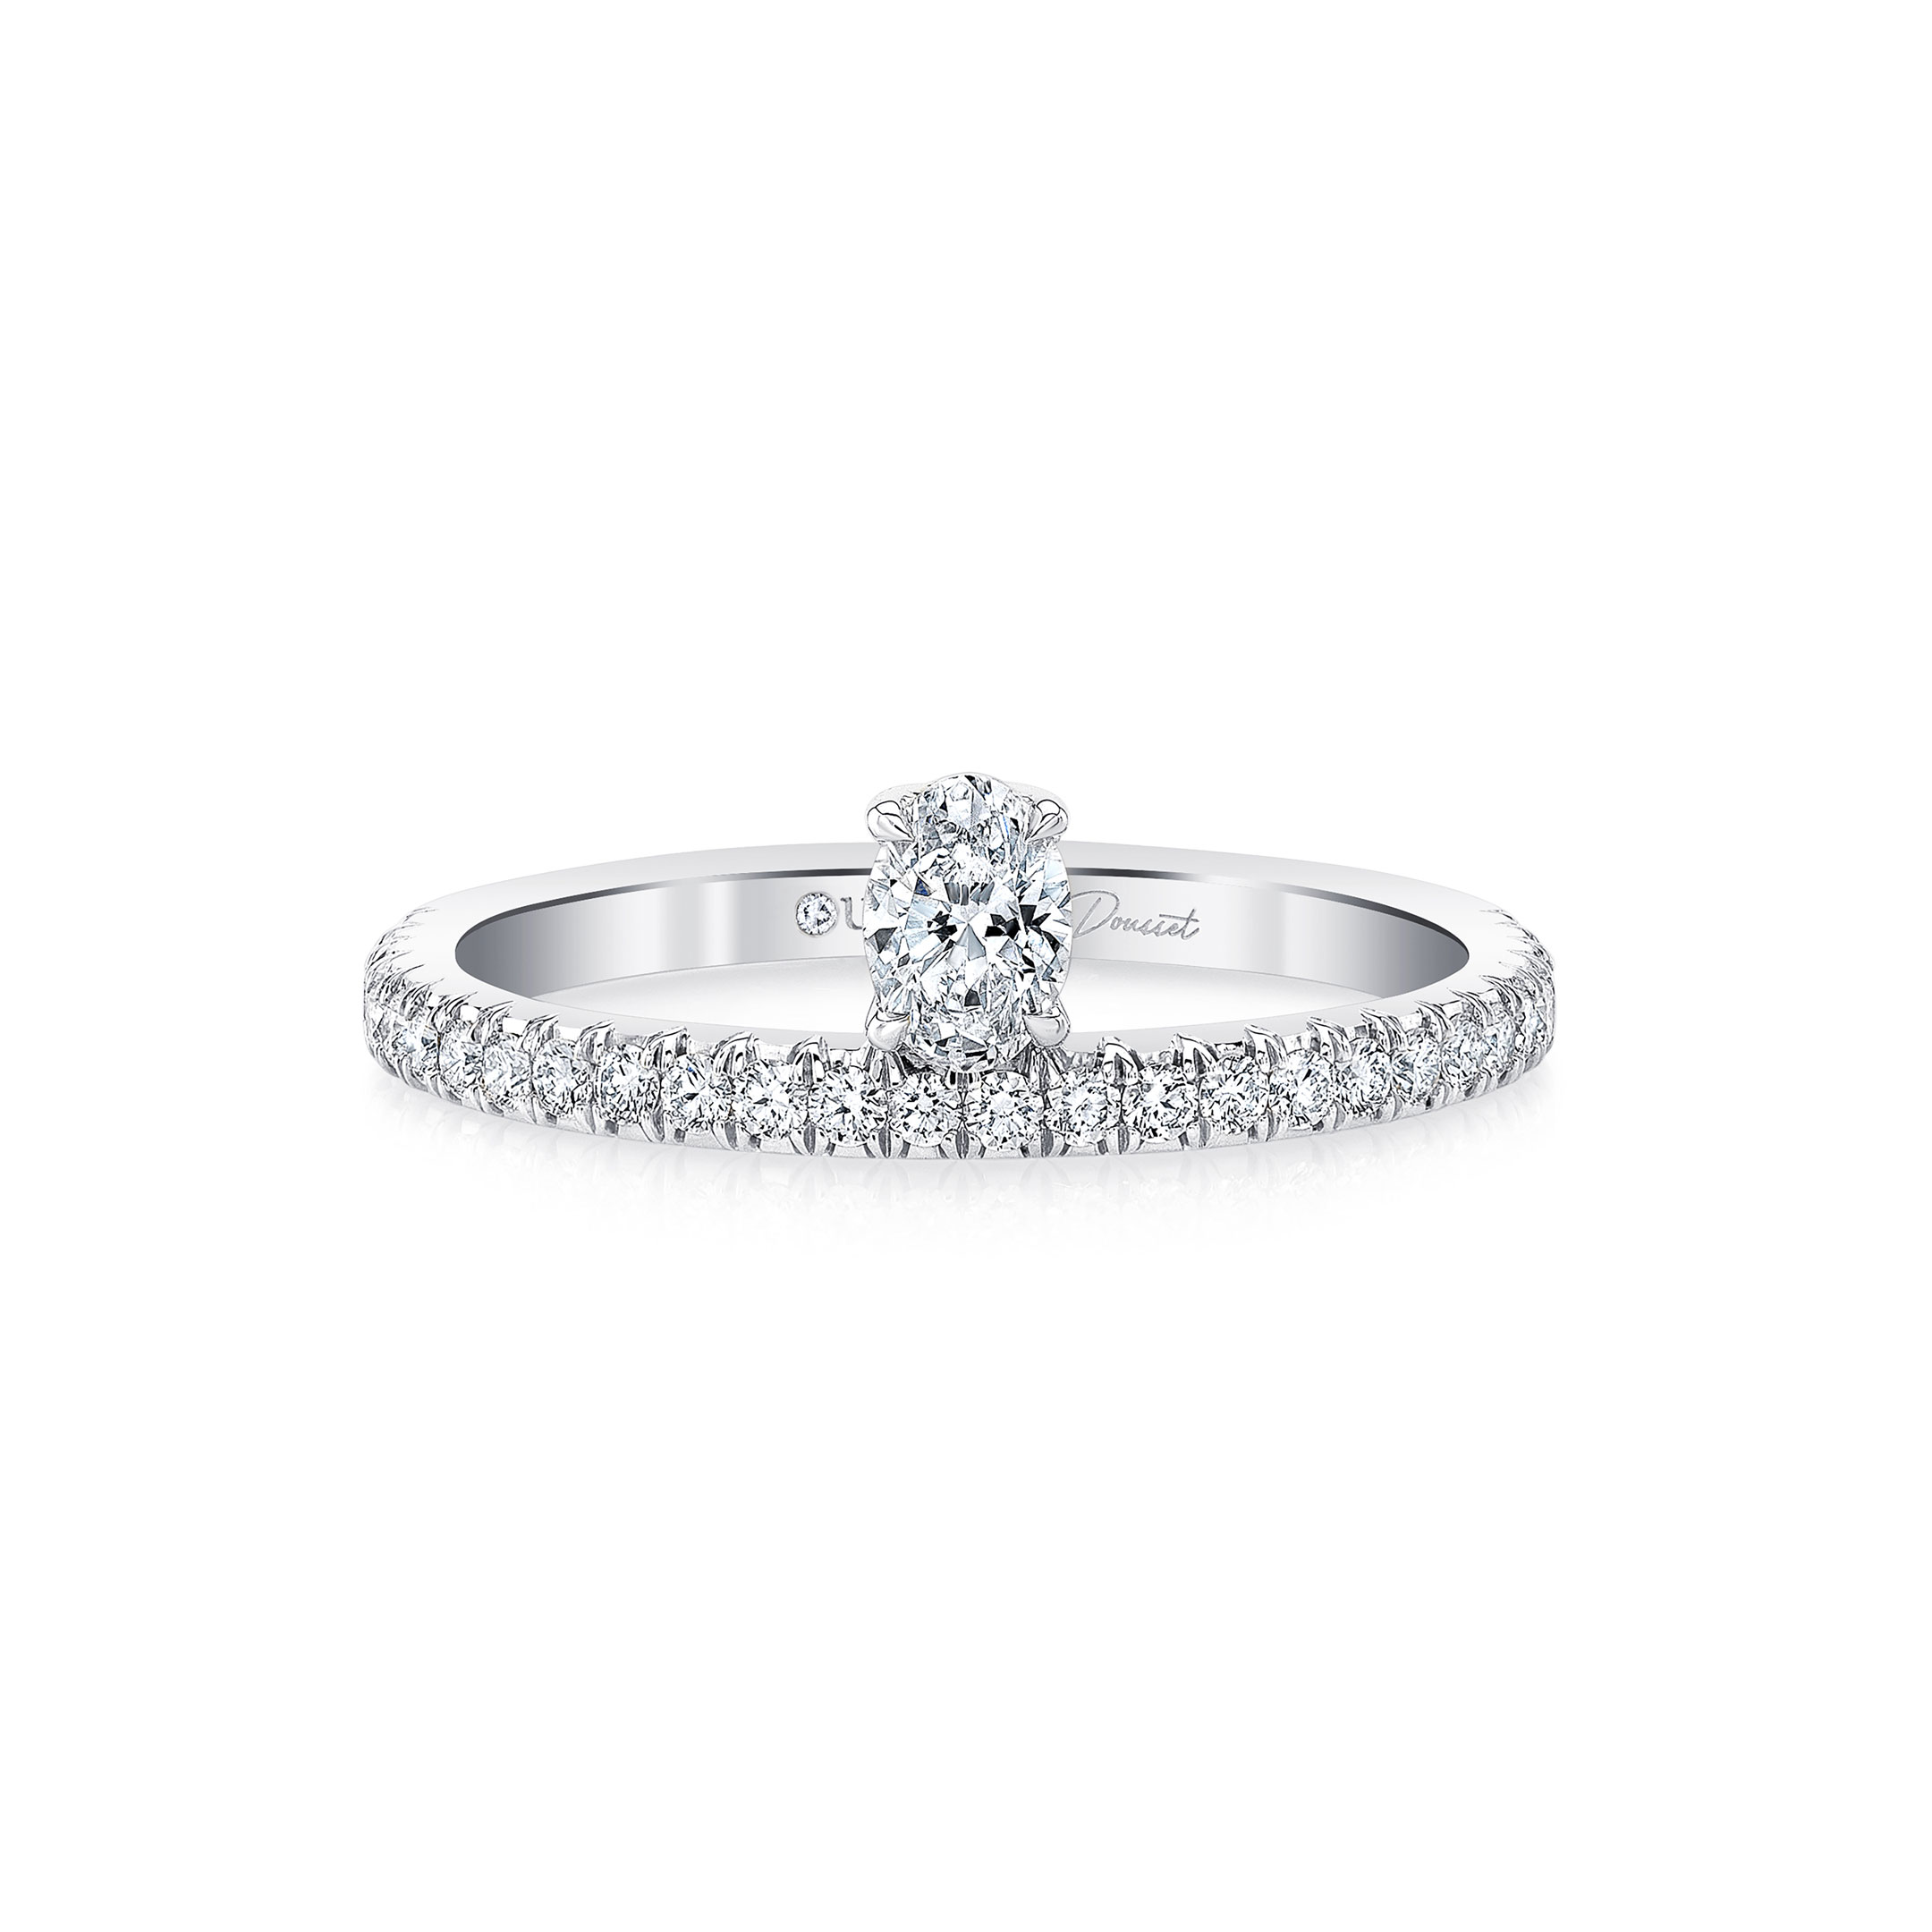 Eloise Floating Oval Diamond Ring in 18k White Gold Front View by Oui by Jean Dousset